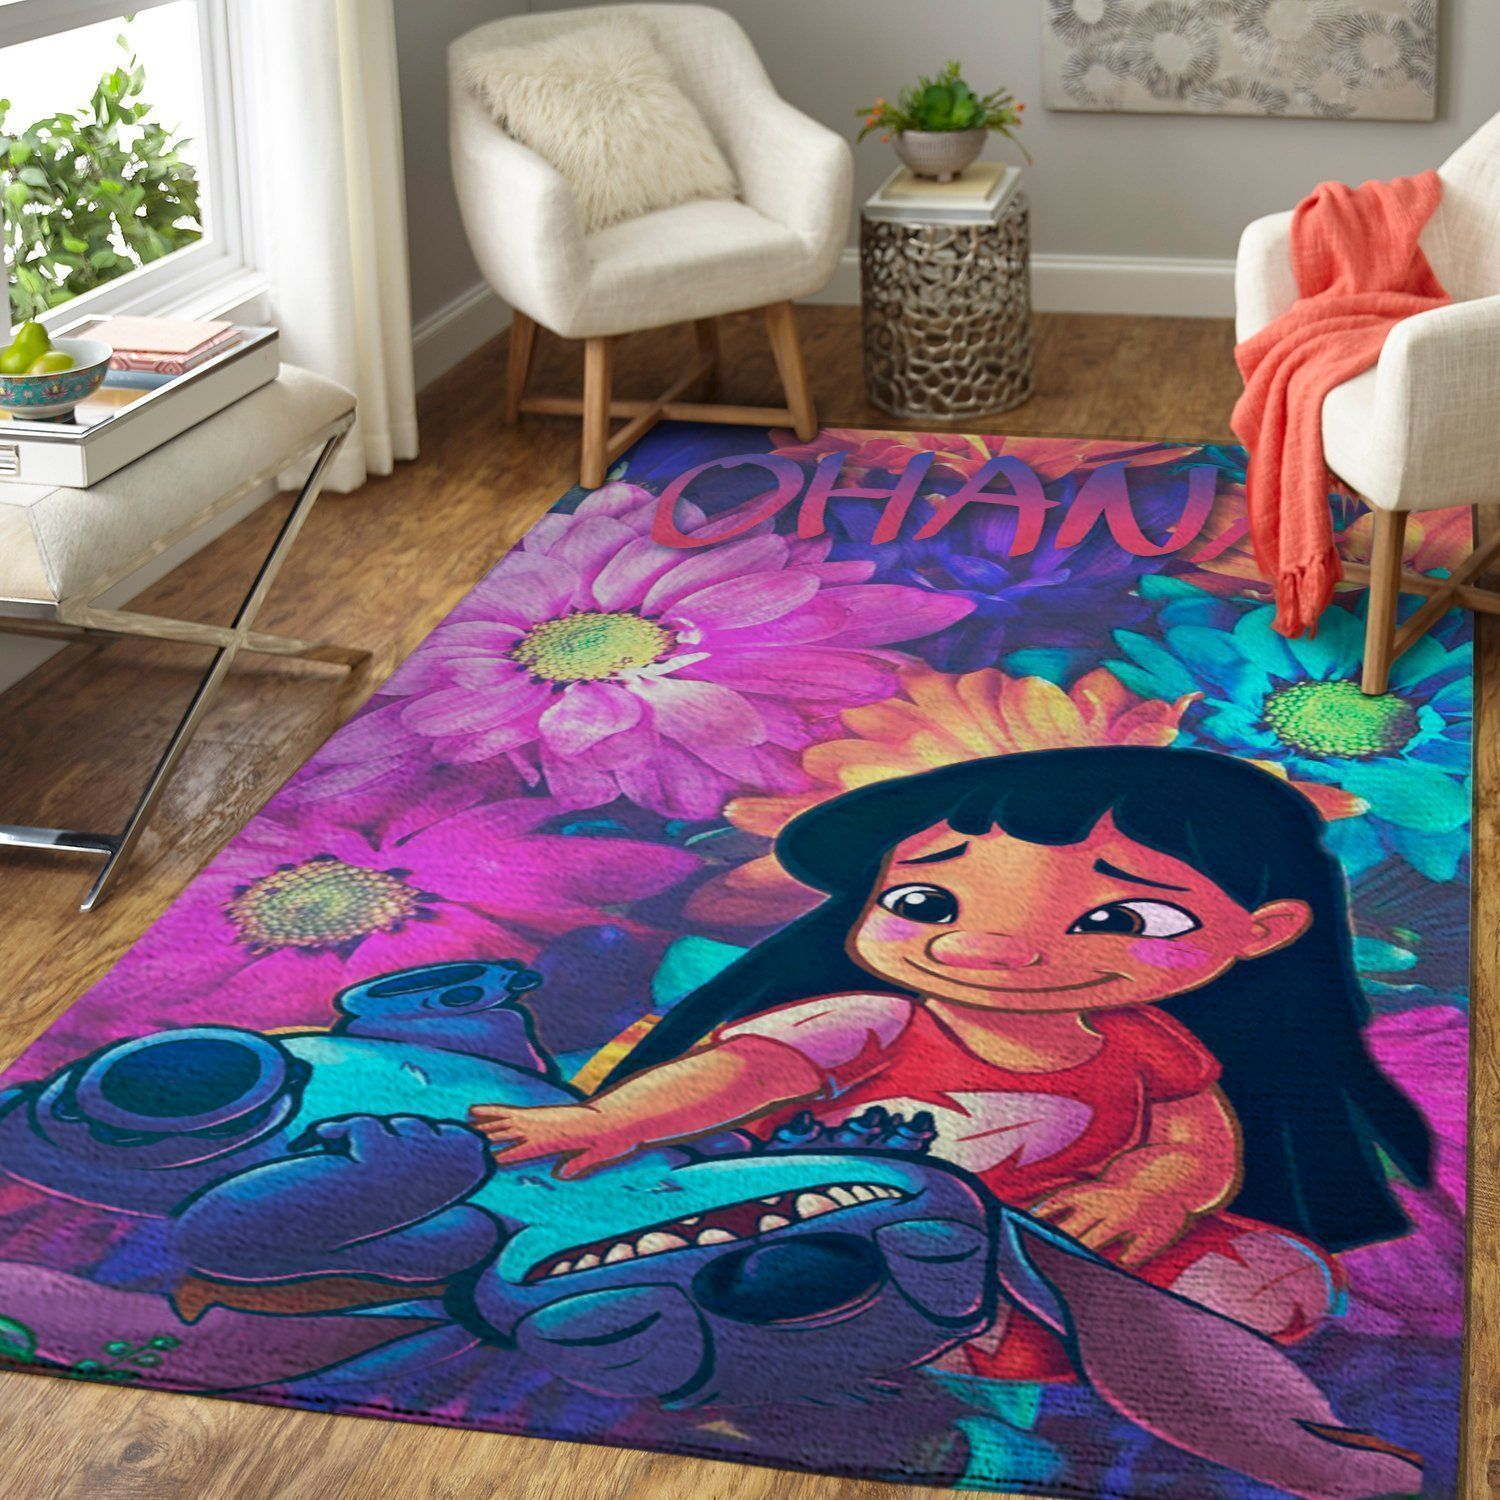 Lilo & Stitch Area Rugs / Disney Movie Living Room Carpet, Custom Floor Decor 04112